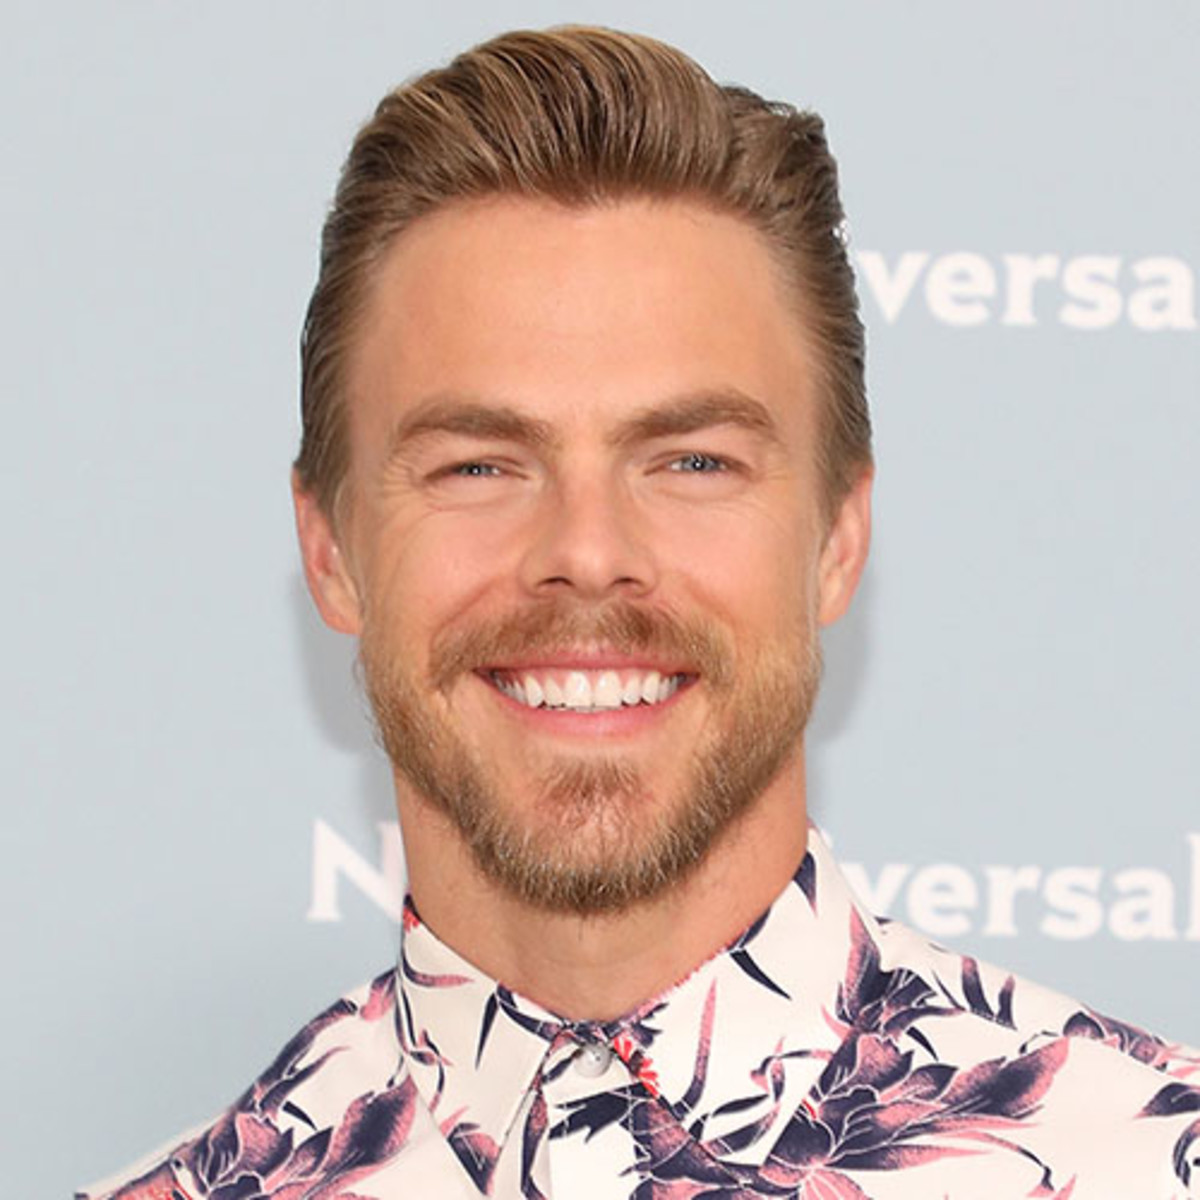 Derek Hough Biography